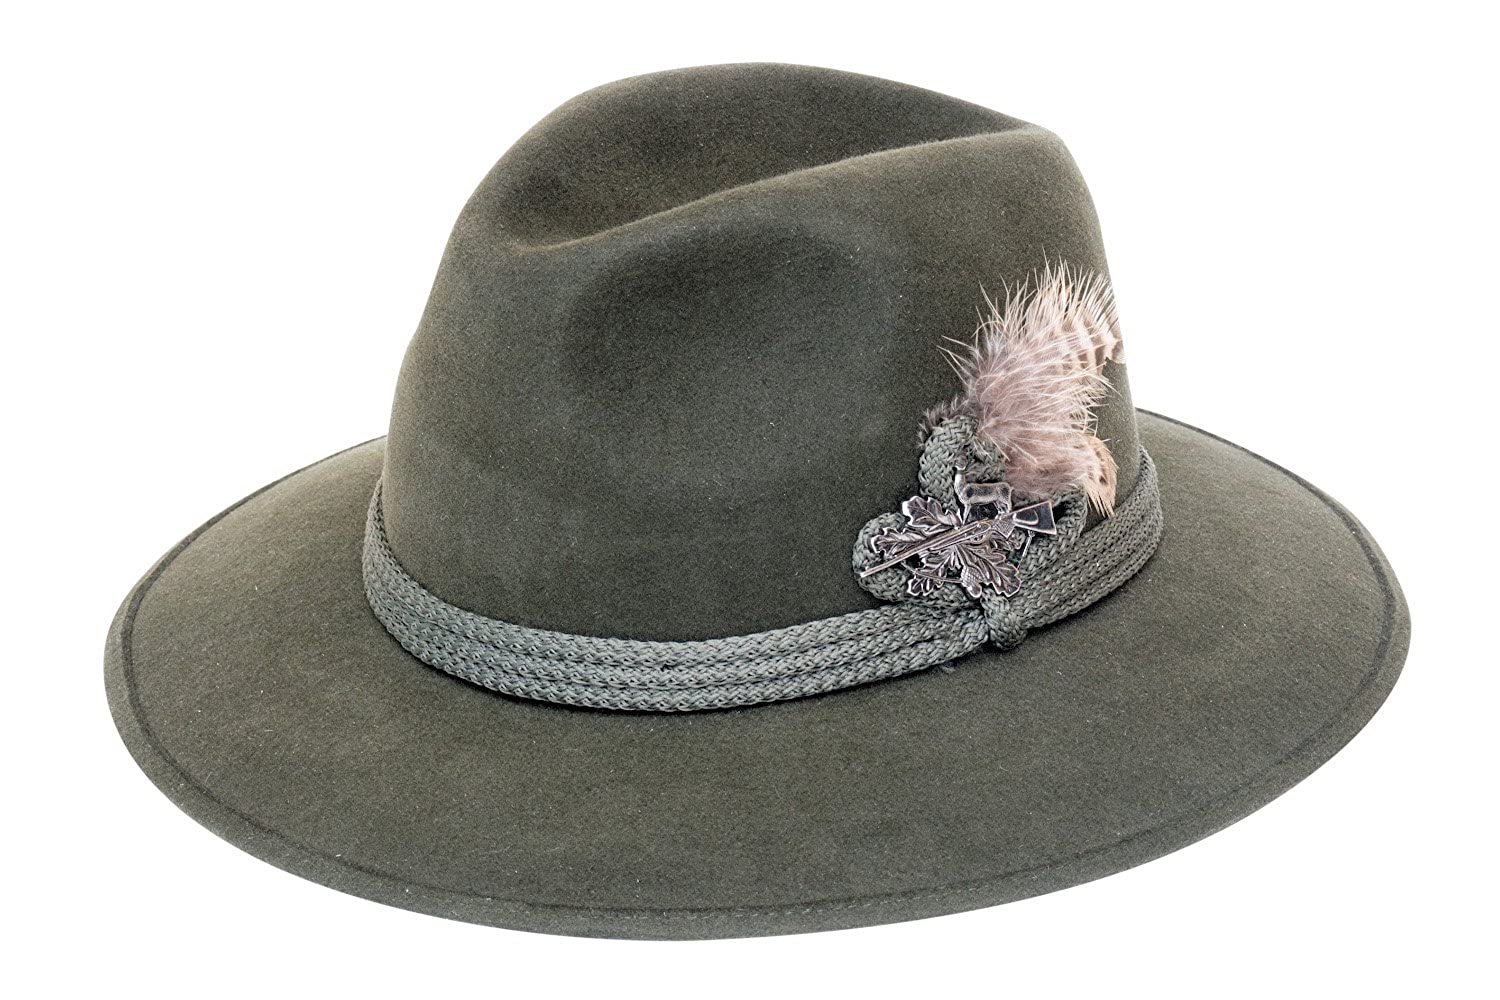 Amazon.com  Felt Depot Munich Wide Brim Rabbit Fur Felt Hat  Clothing 649002887